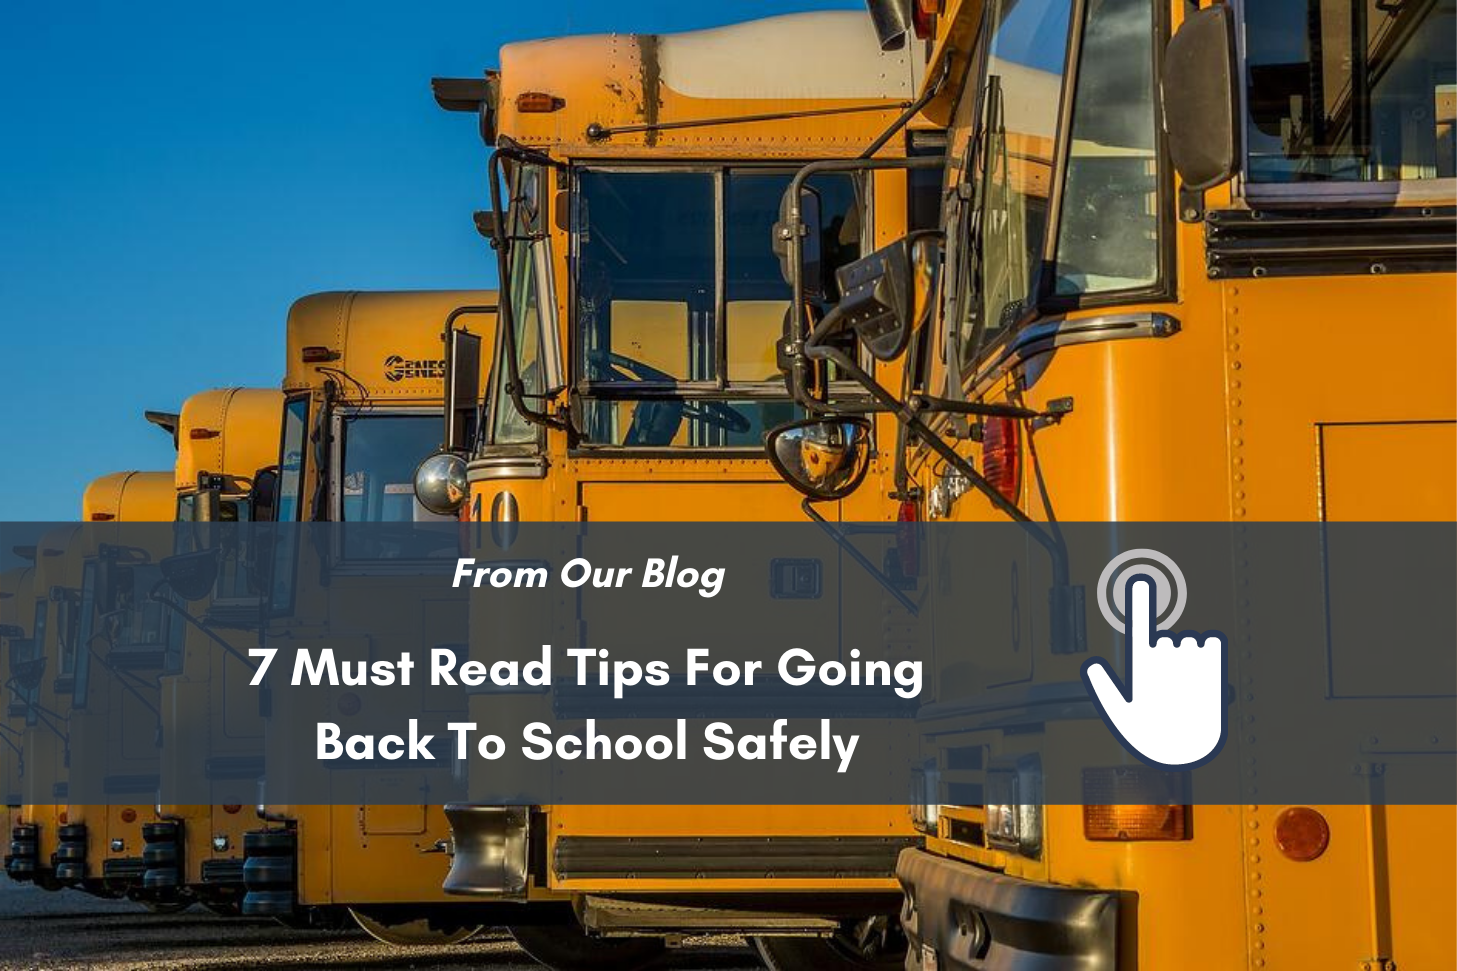 7 must read tips for going back to school safely link image